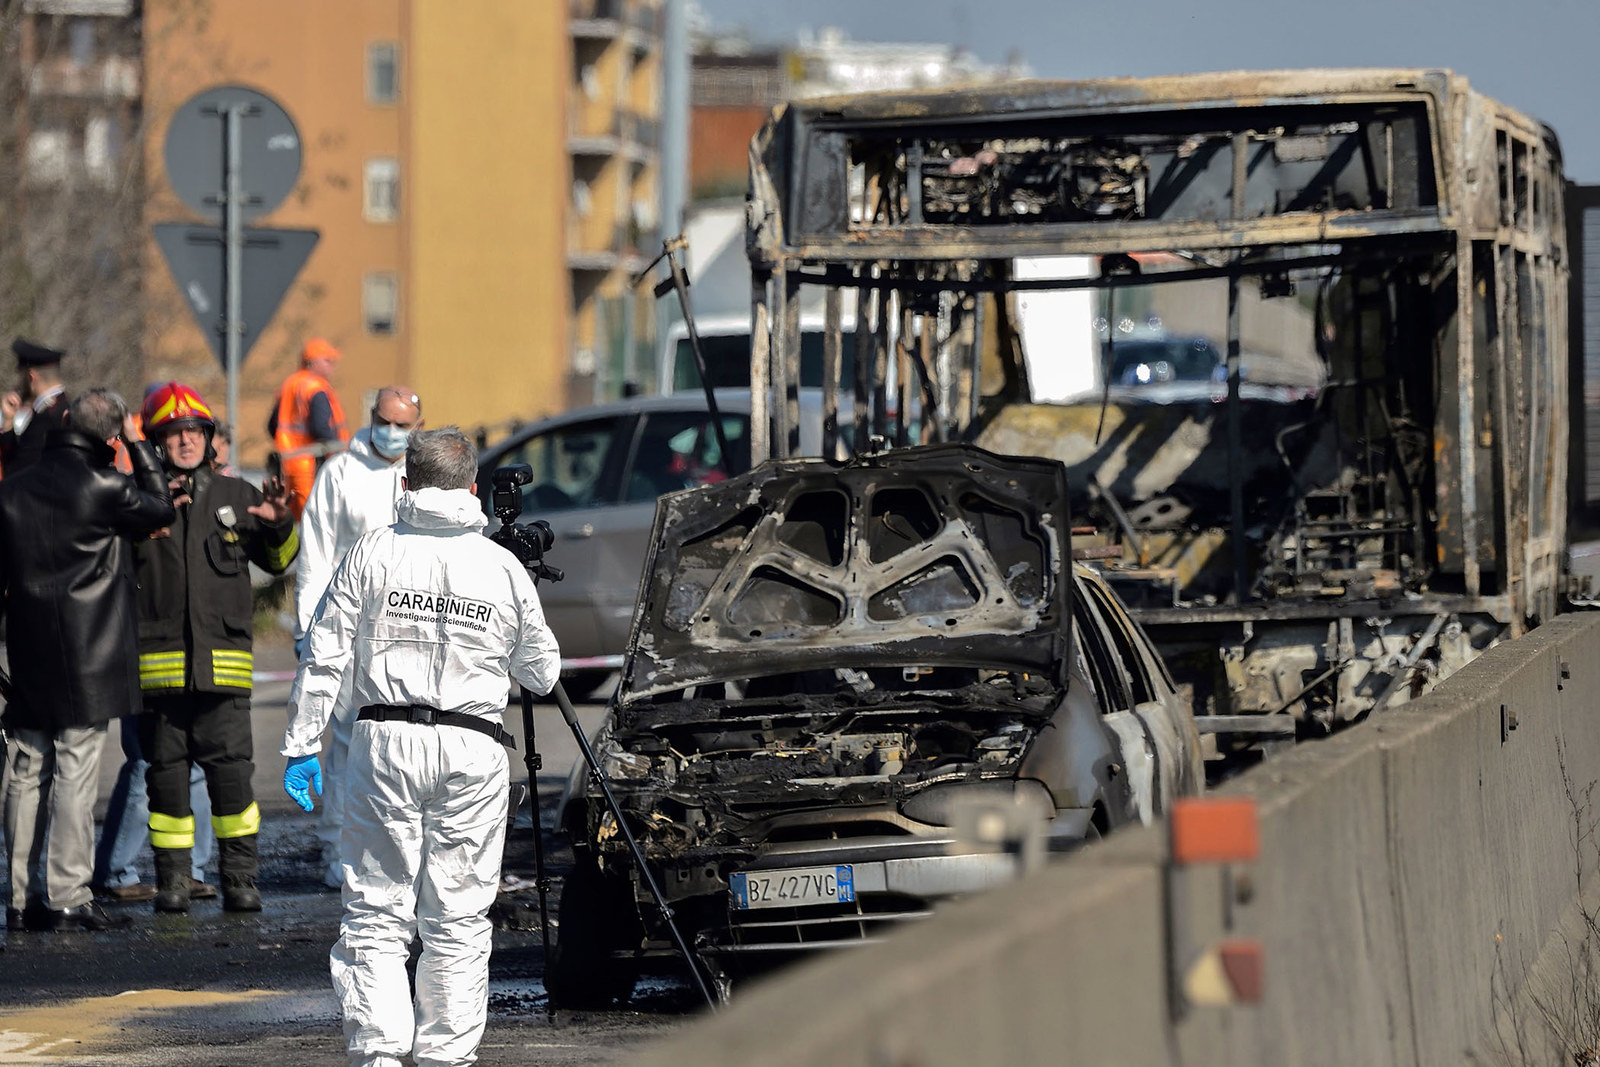 Forensic policemen and firefighters work by the wreckage of a school bus that was transporting some 50 children on March 20, after it was torched by the bus' driver, in San Donato Milanese, Italy. All of the children were rescued from the bus.